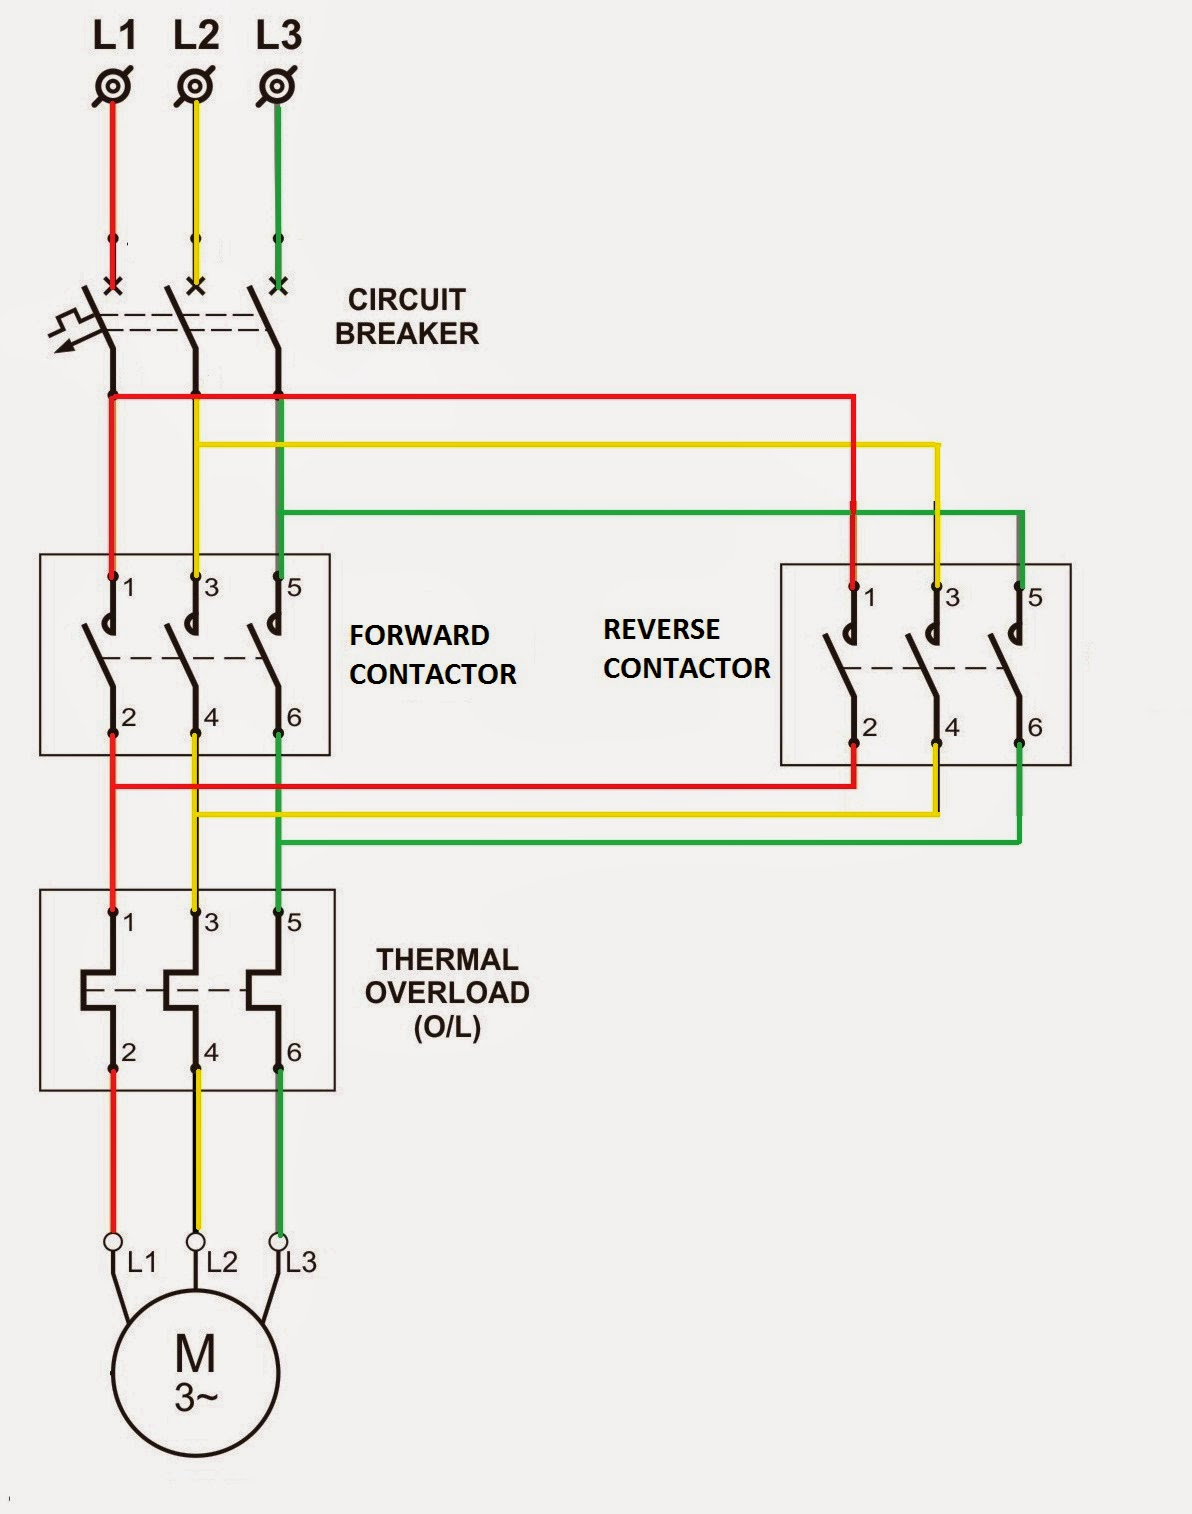 Cool 3 phase motor forward reverse circuit ideas electrical fantastic motor control forward reverse diagram ideas electrical asfbconference2016 Choice Image